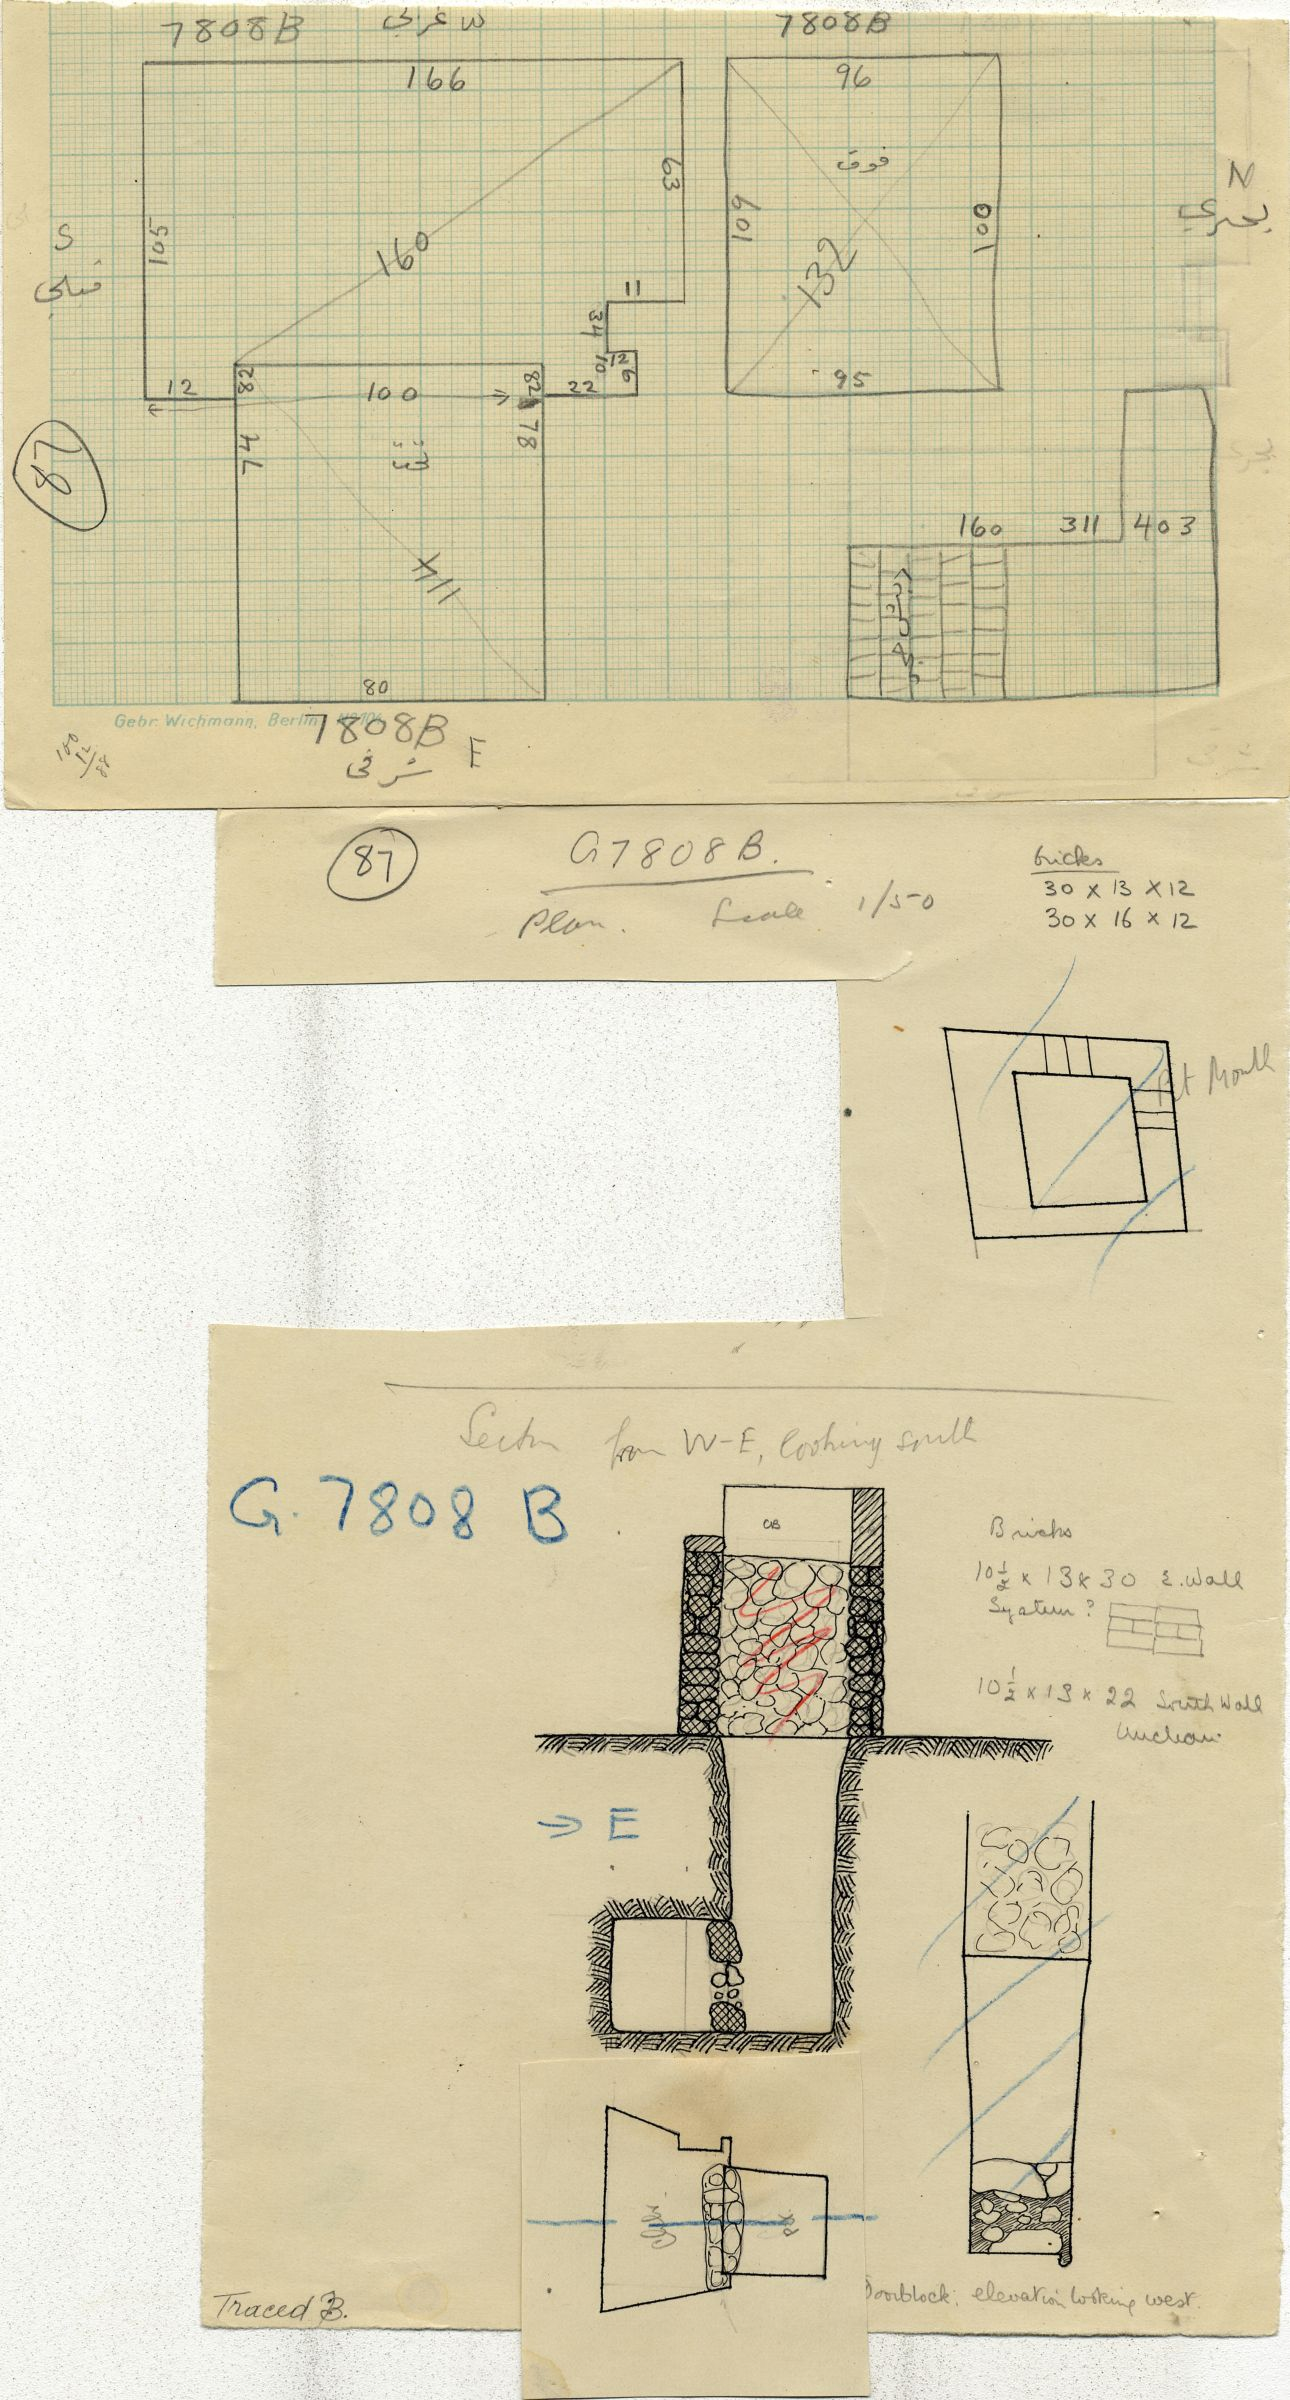 Maps and plans: G 7808, Shaft B